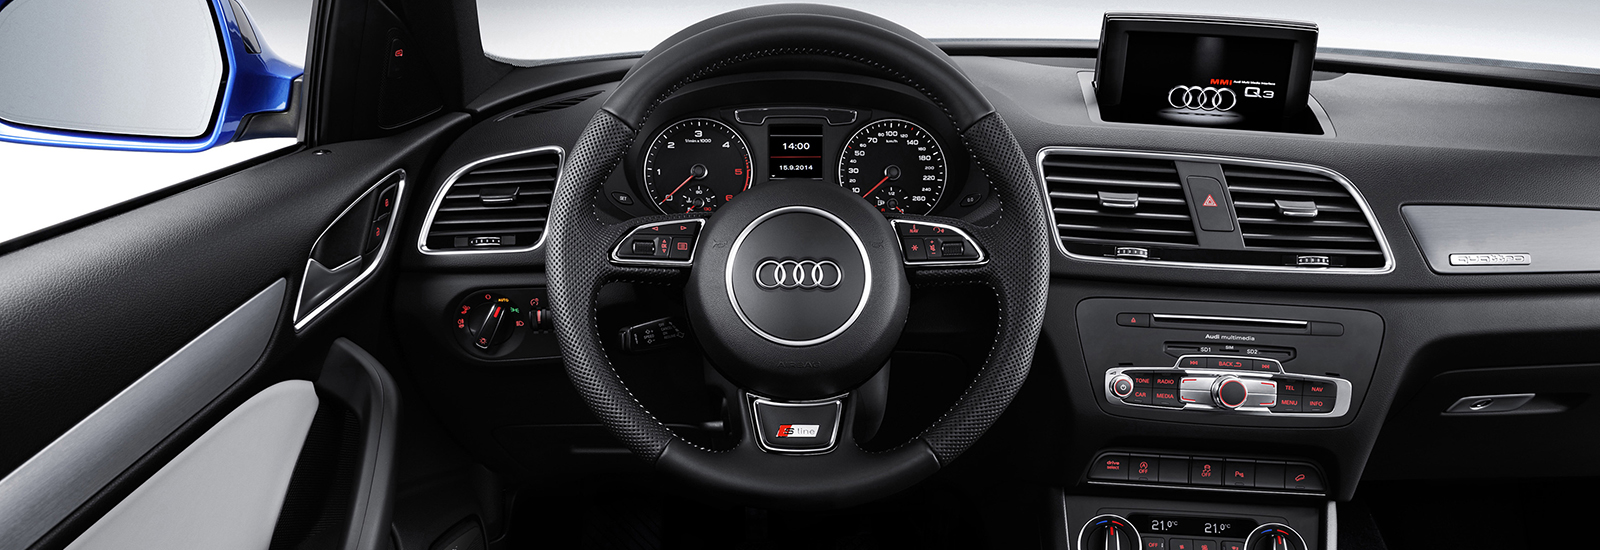 2018 audi q3 interior.  interior the upcoming audi q3 will have a more modern interior than the current  modelu0027s shown here for 2018 audi q3 e